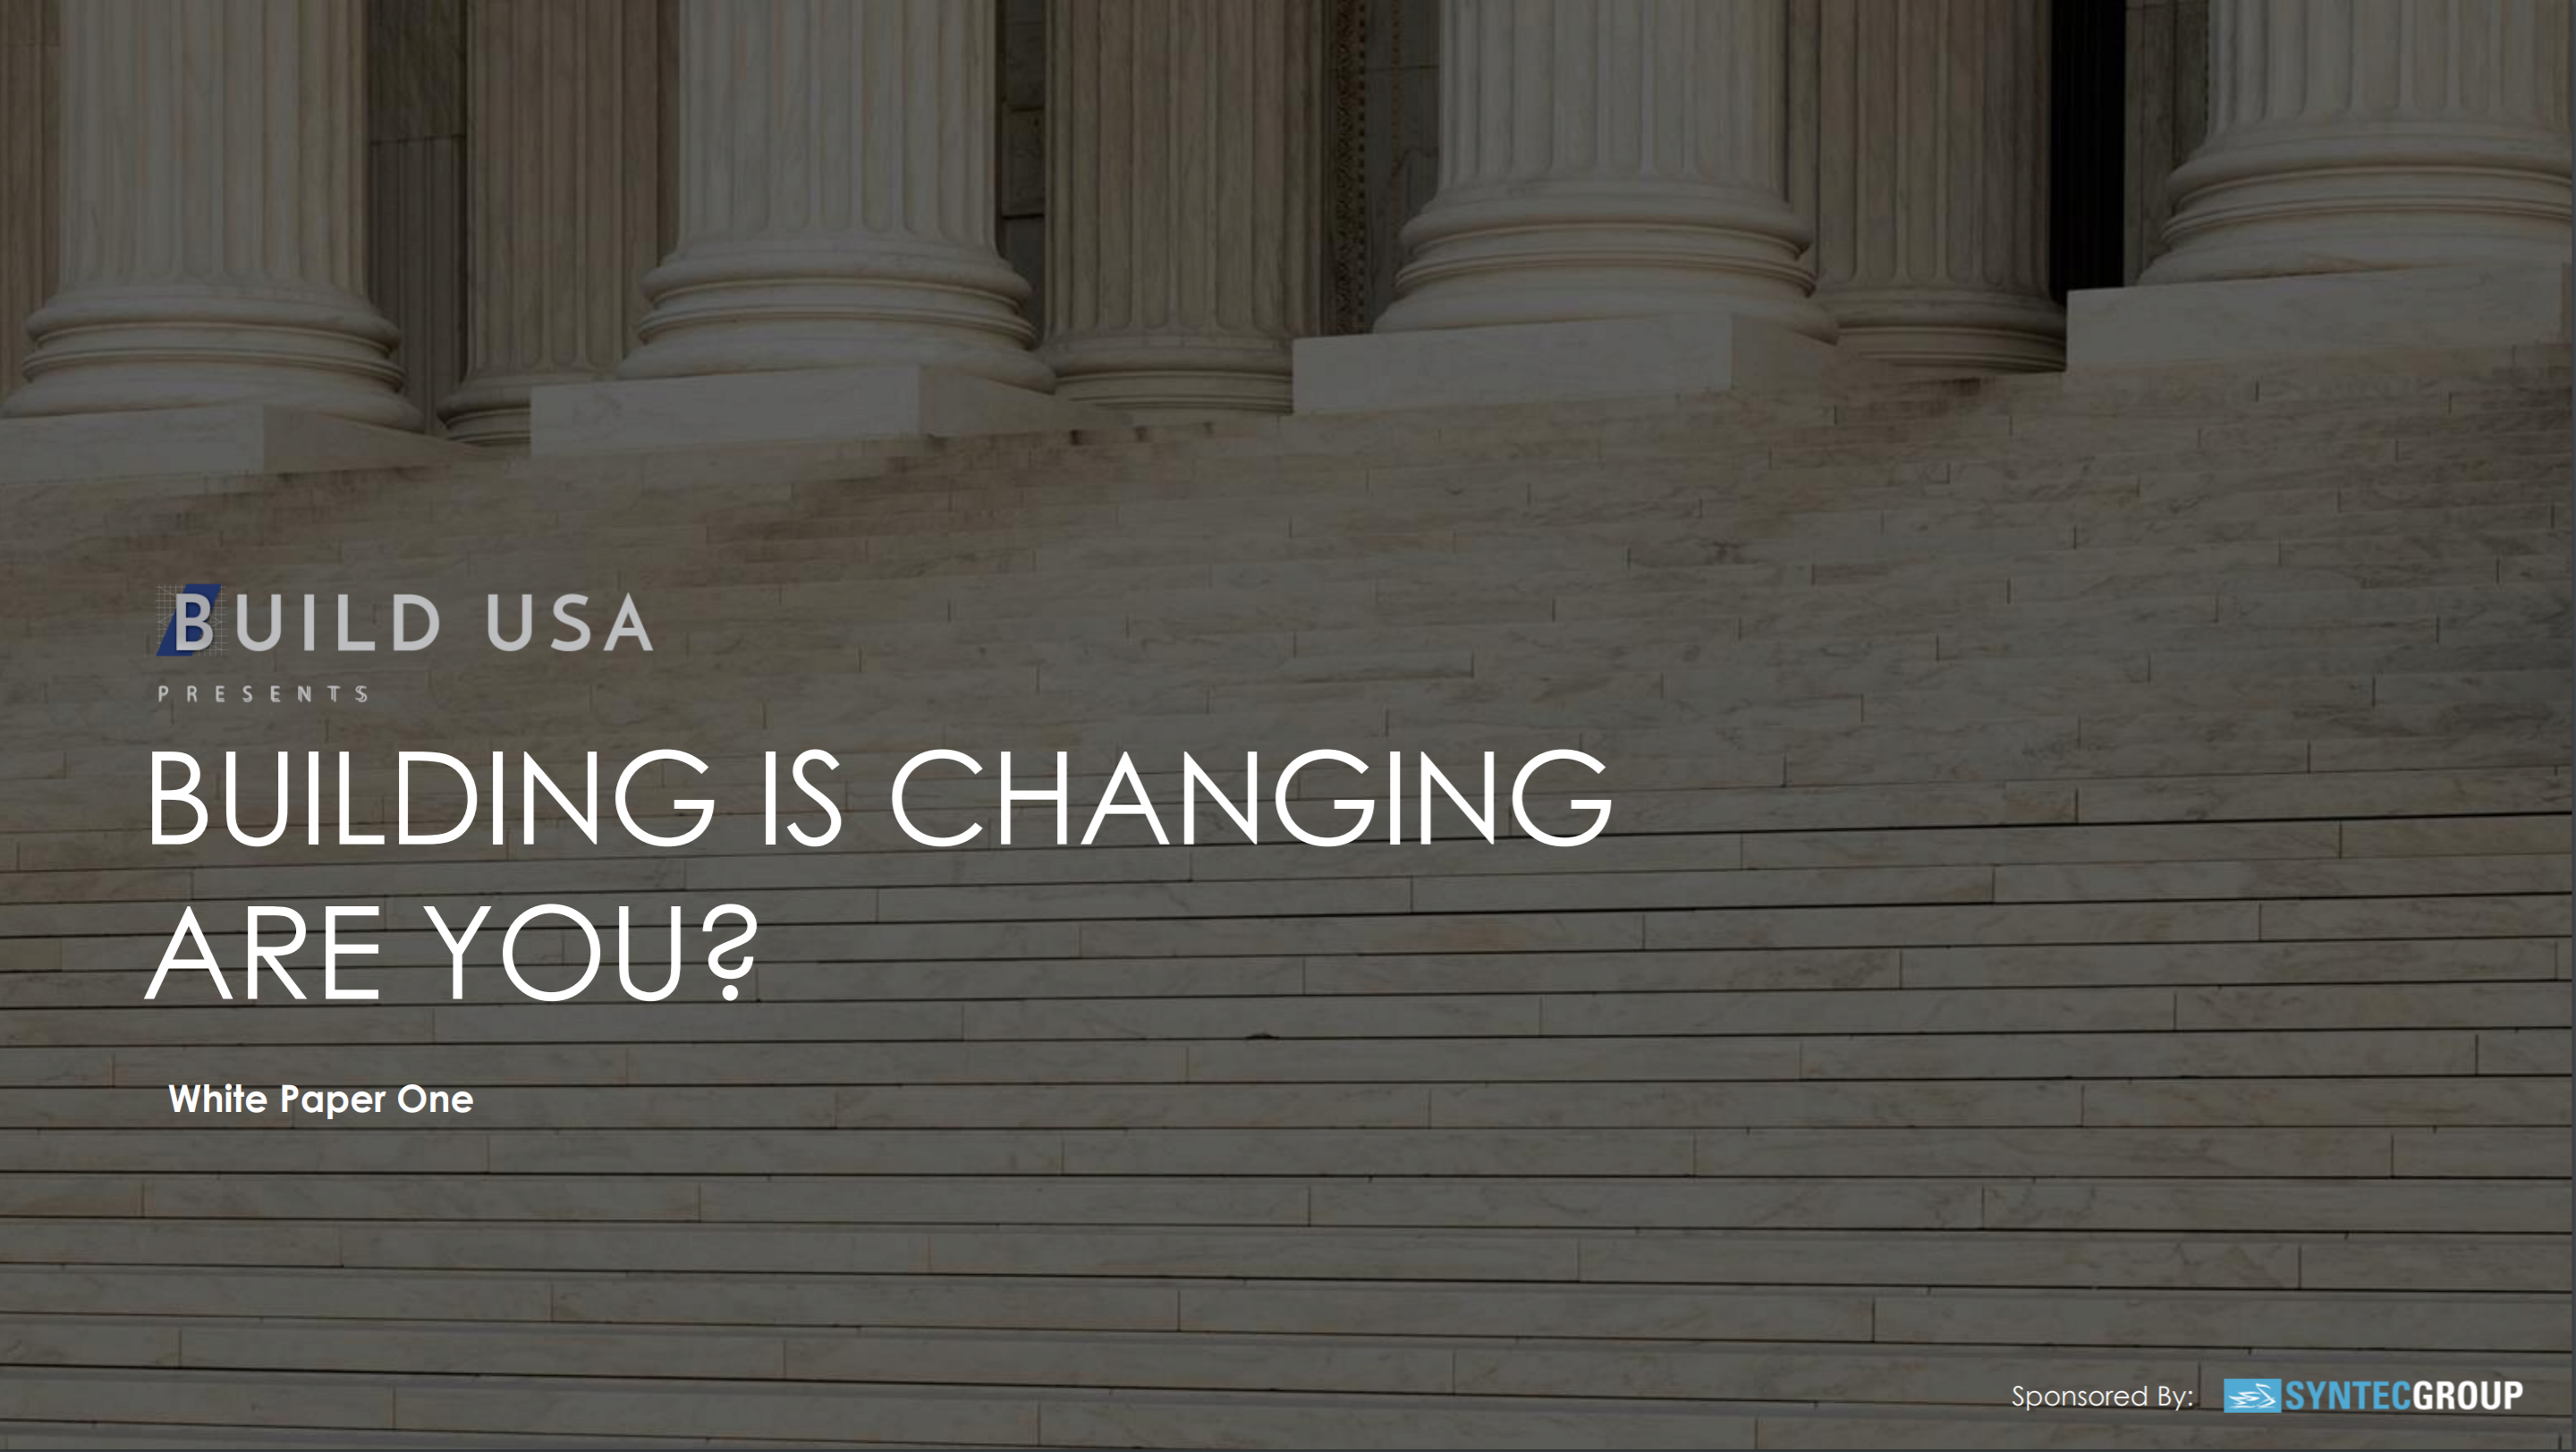 White Paper One: Building is Changing Are You?